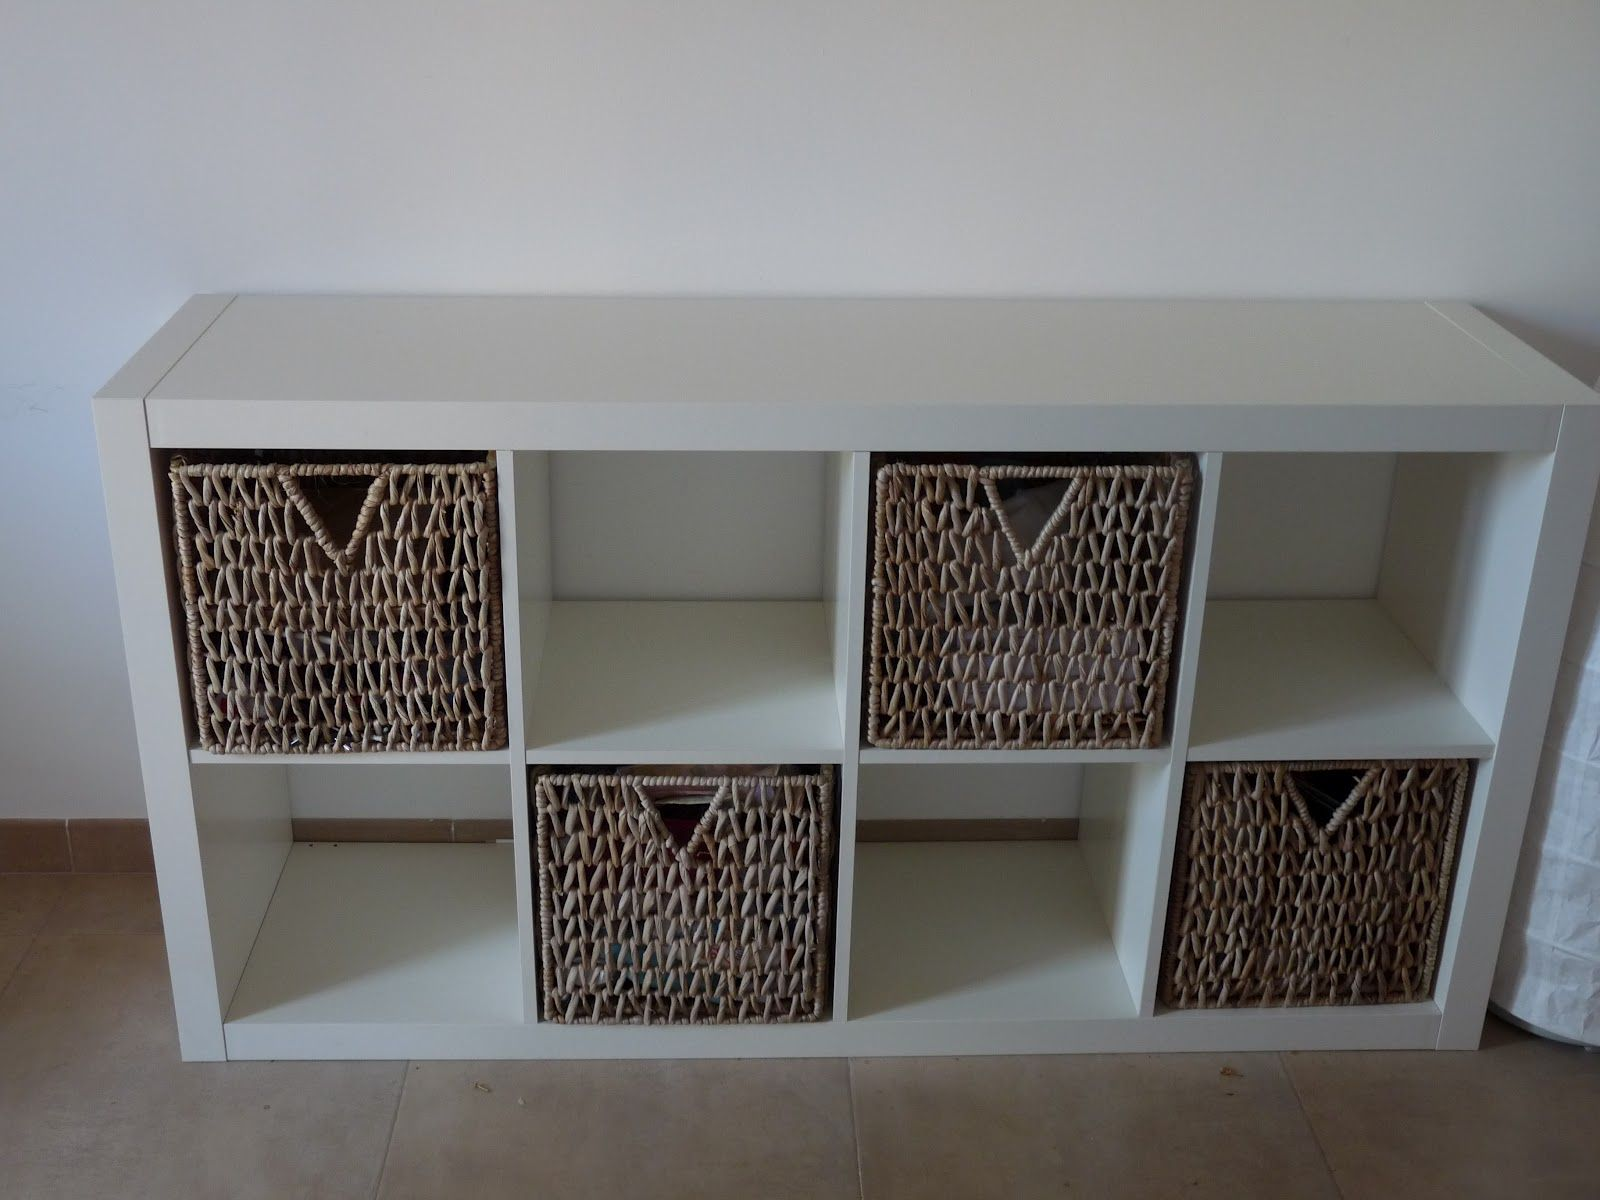 storage bookshelves with baskets